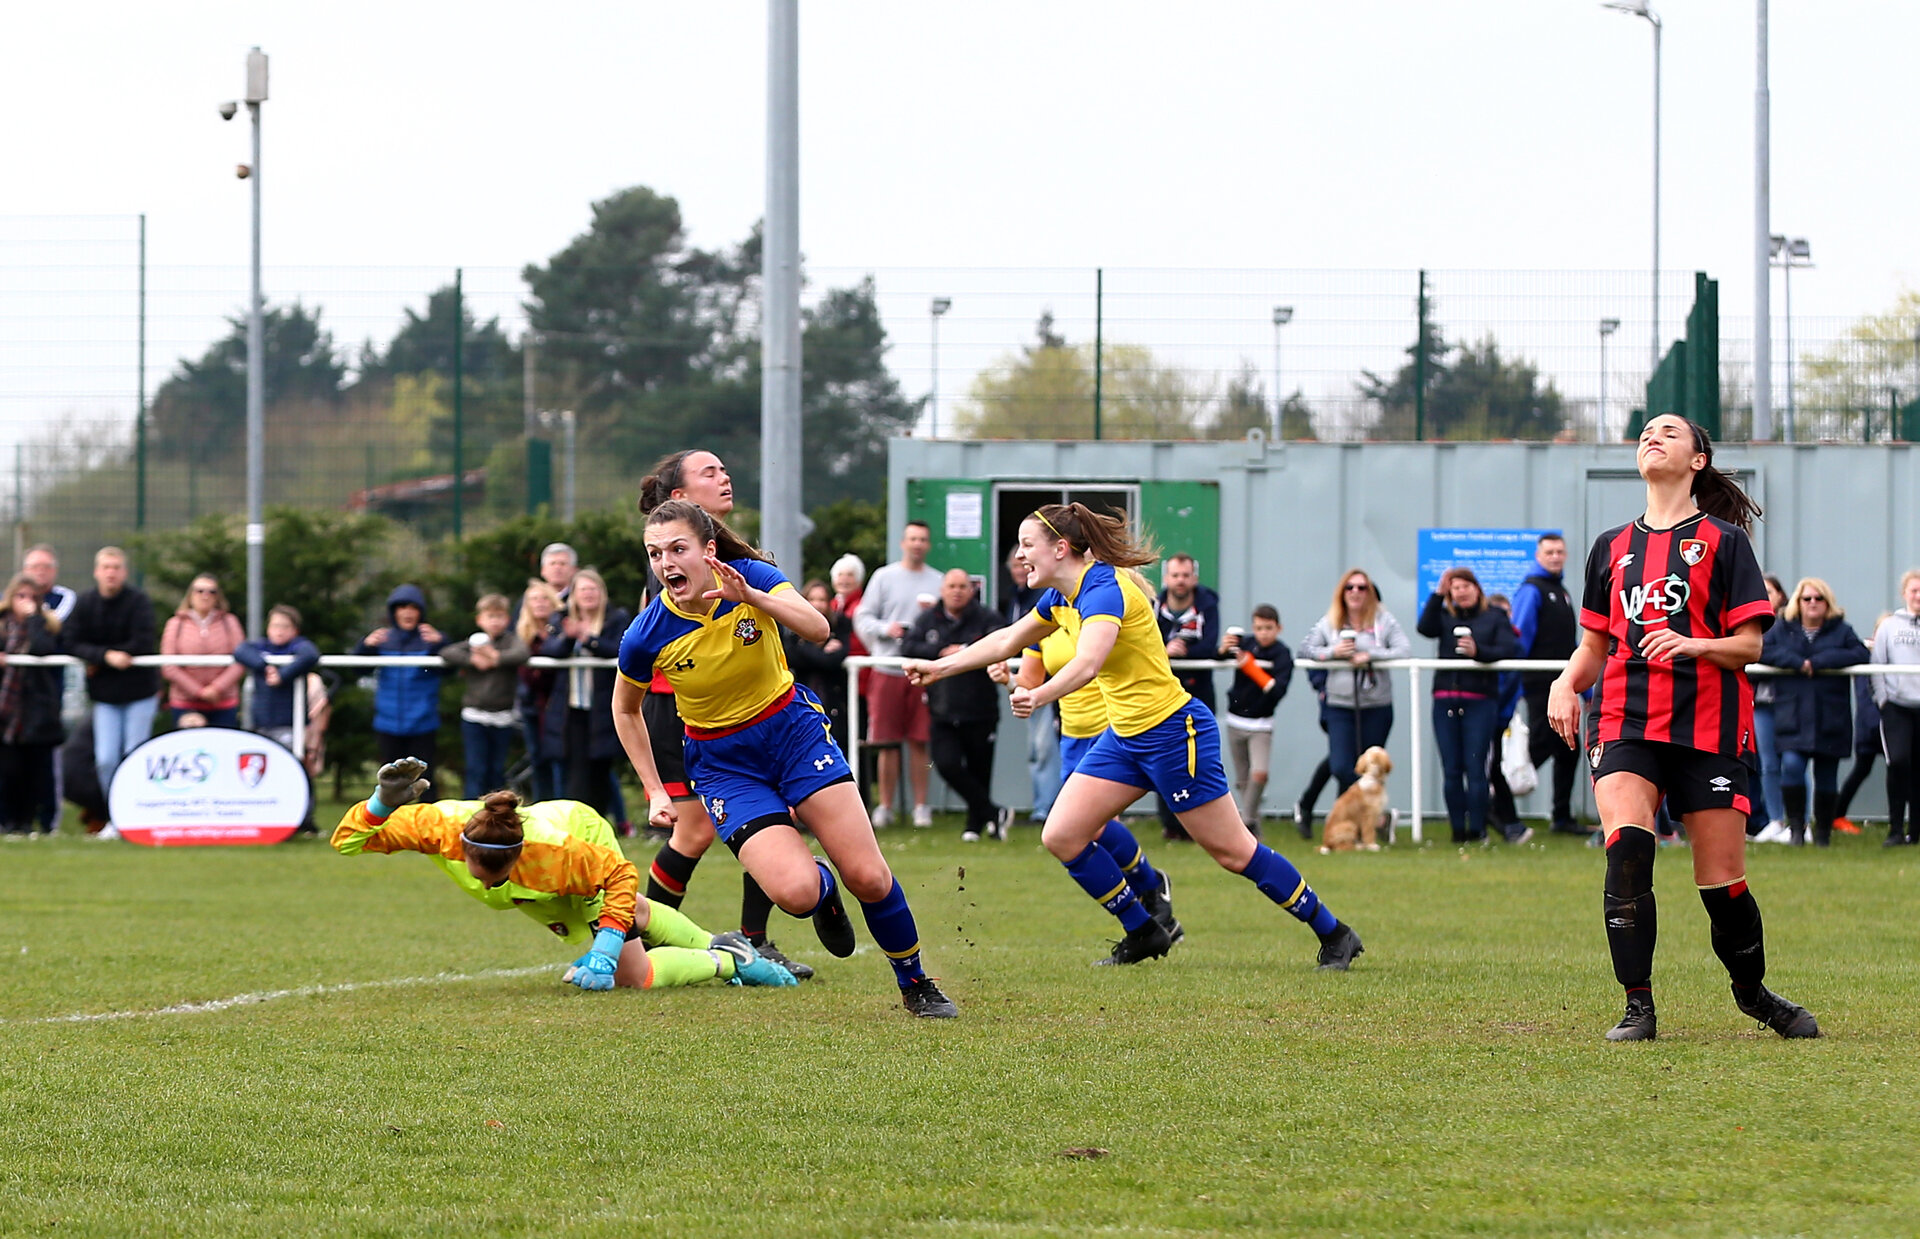 Chloe Newton wheels away to celebrate after opening the scoring during the match between AFCB Women v Southampton FC Women, at Verwood Town FC, Verwood, 31st March 2019